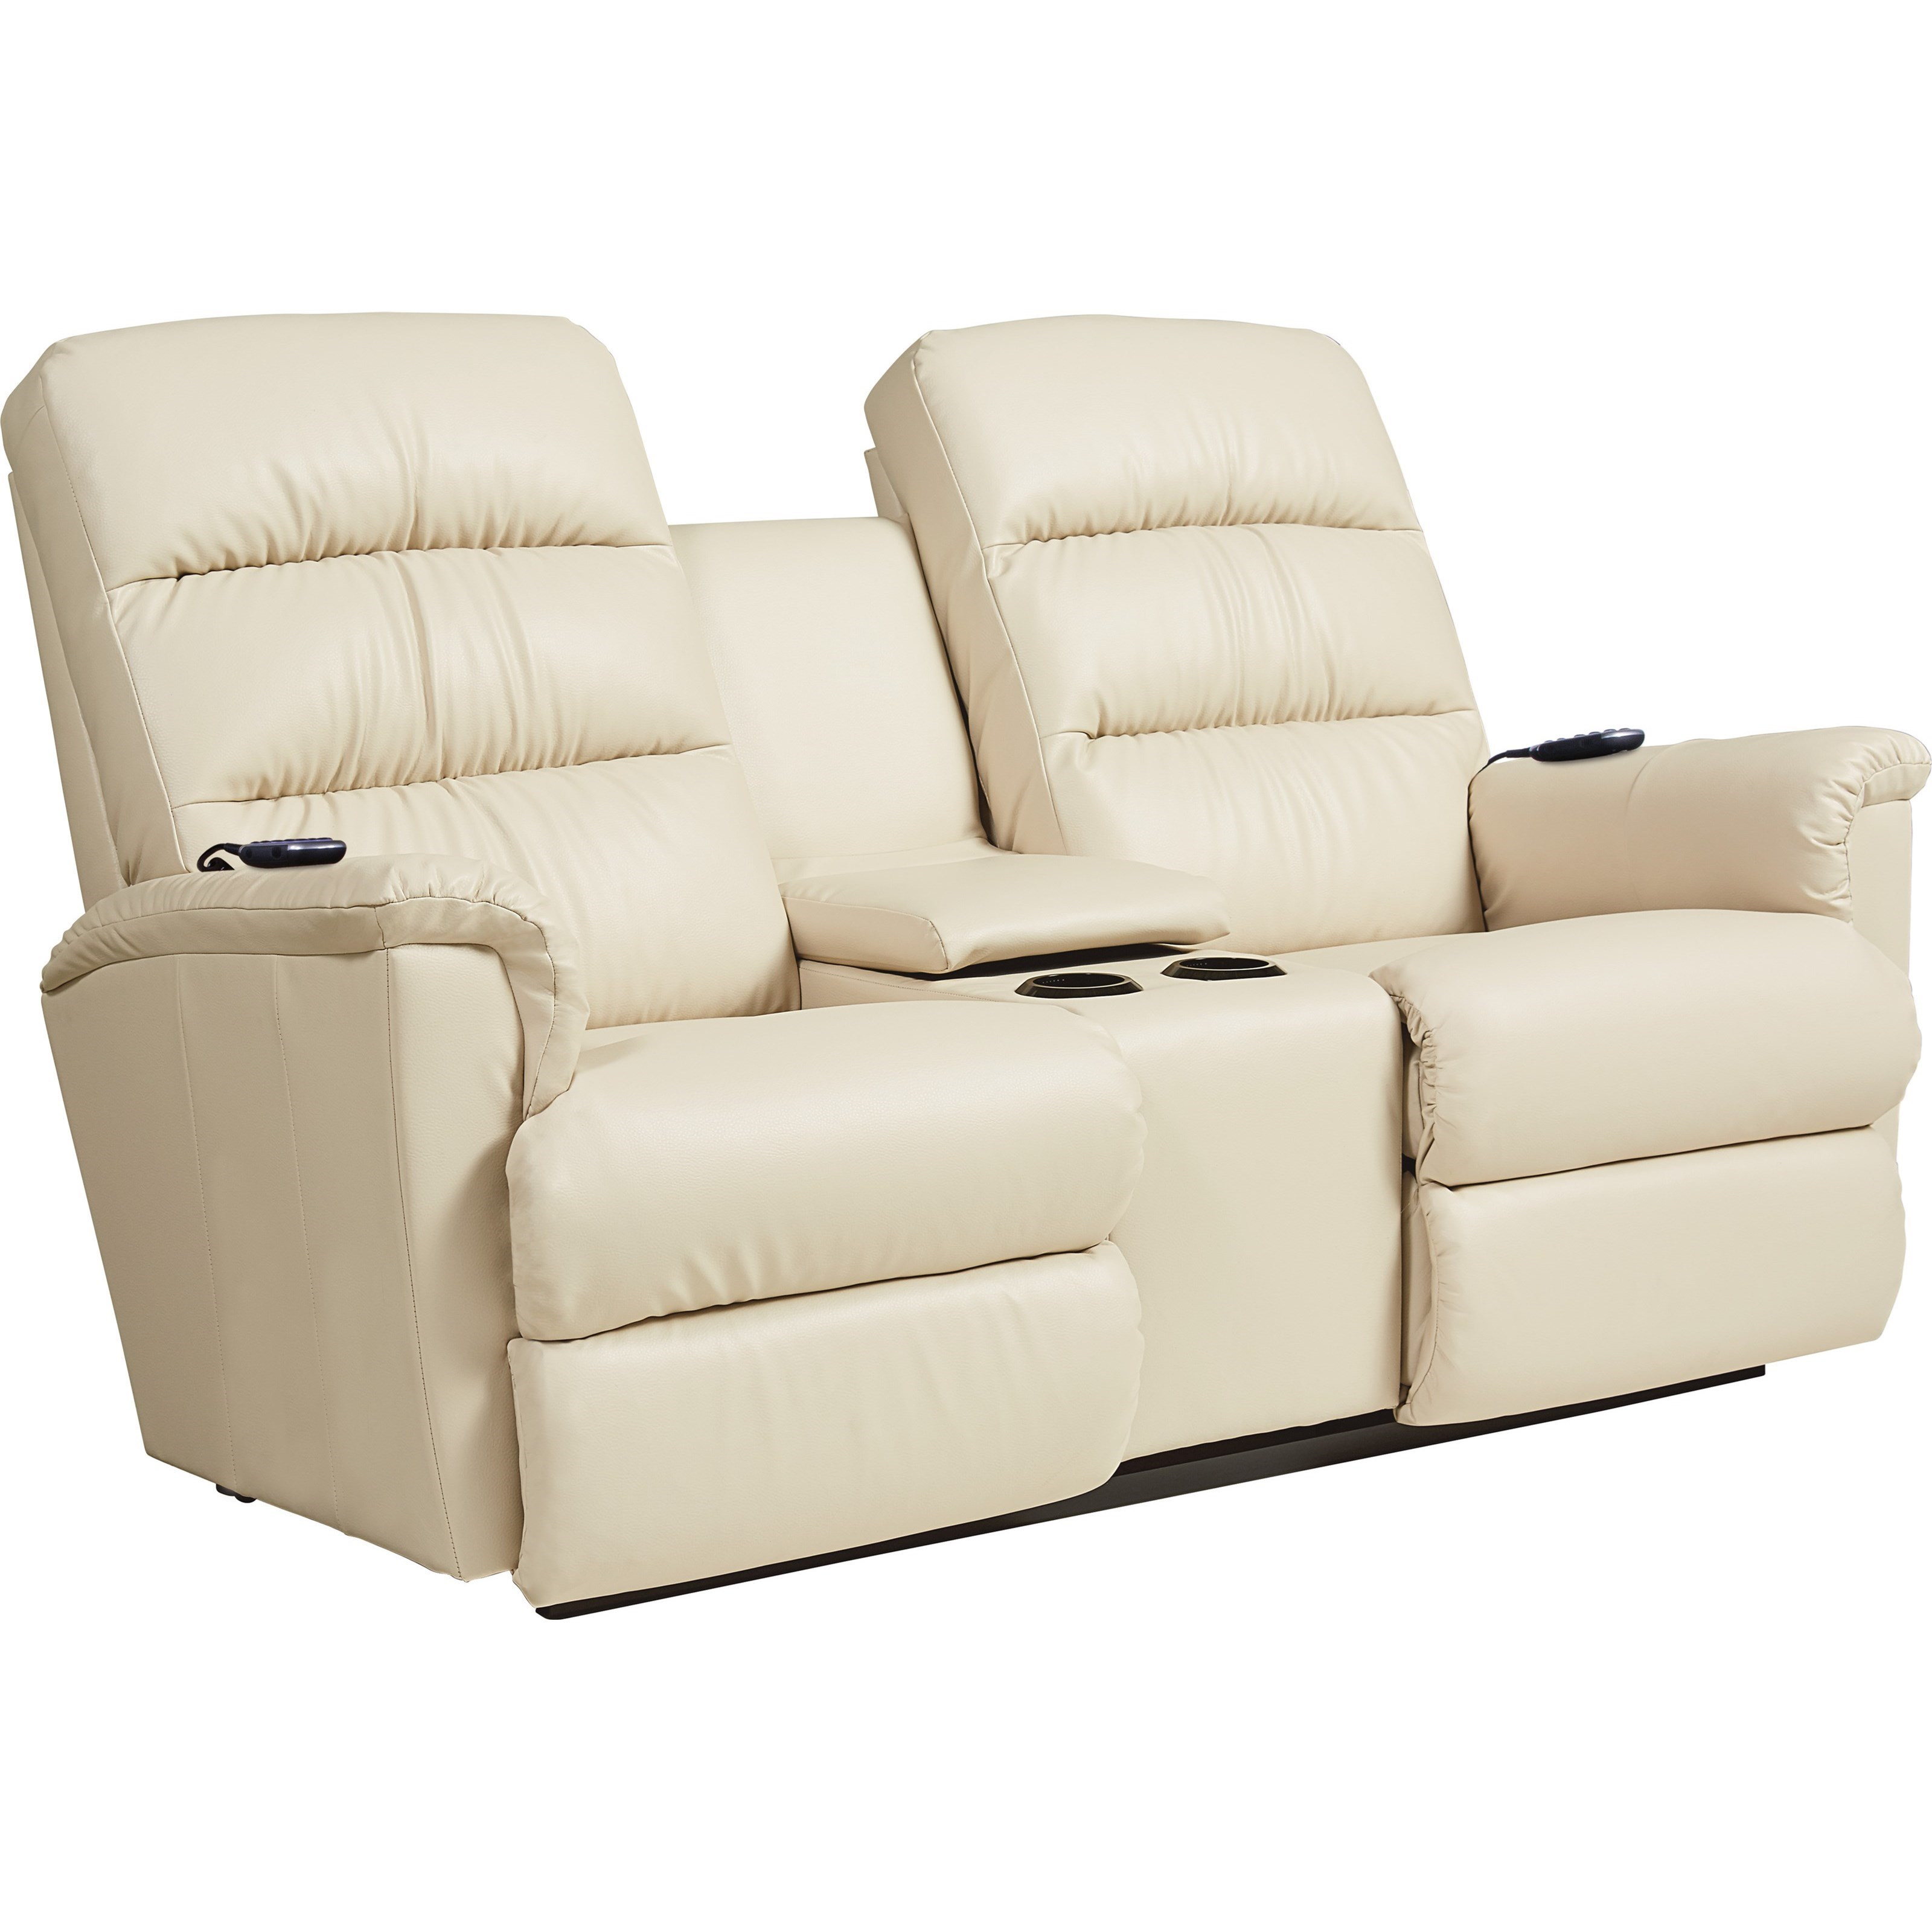 Lazyboy Loveseat Recliner Beautiful Lazboy Asher Laztime Full Reclining Loveseat W With Lazyboy